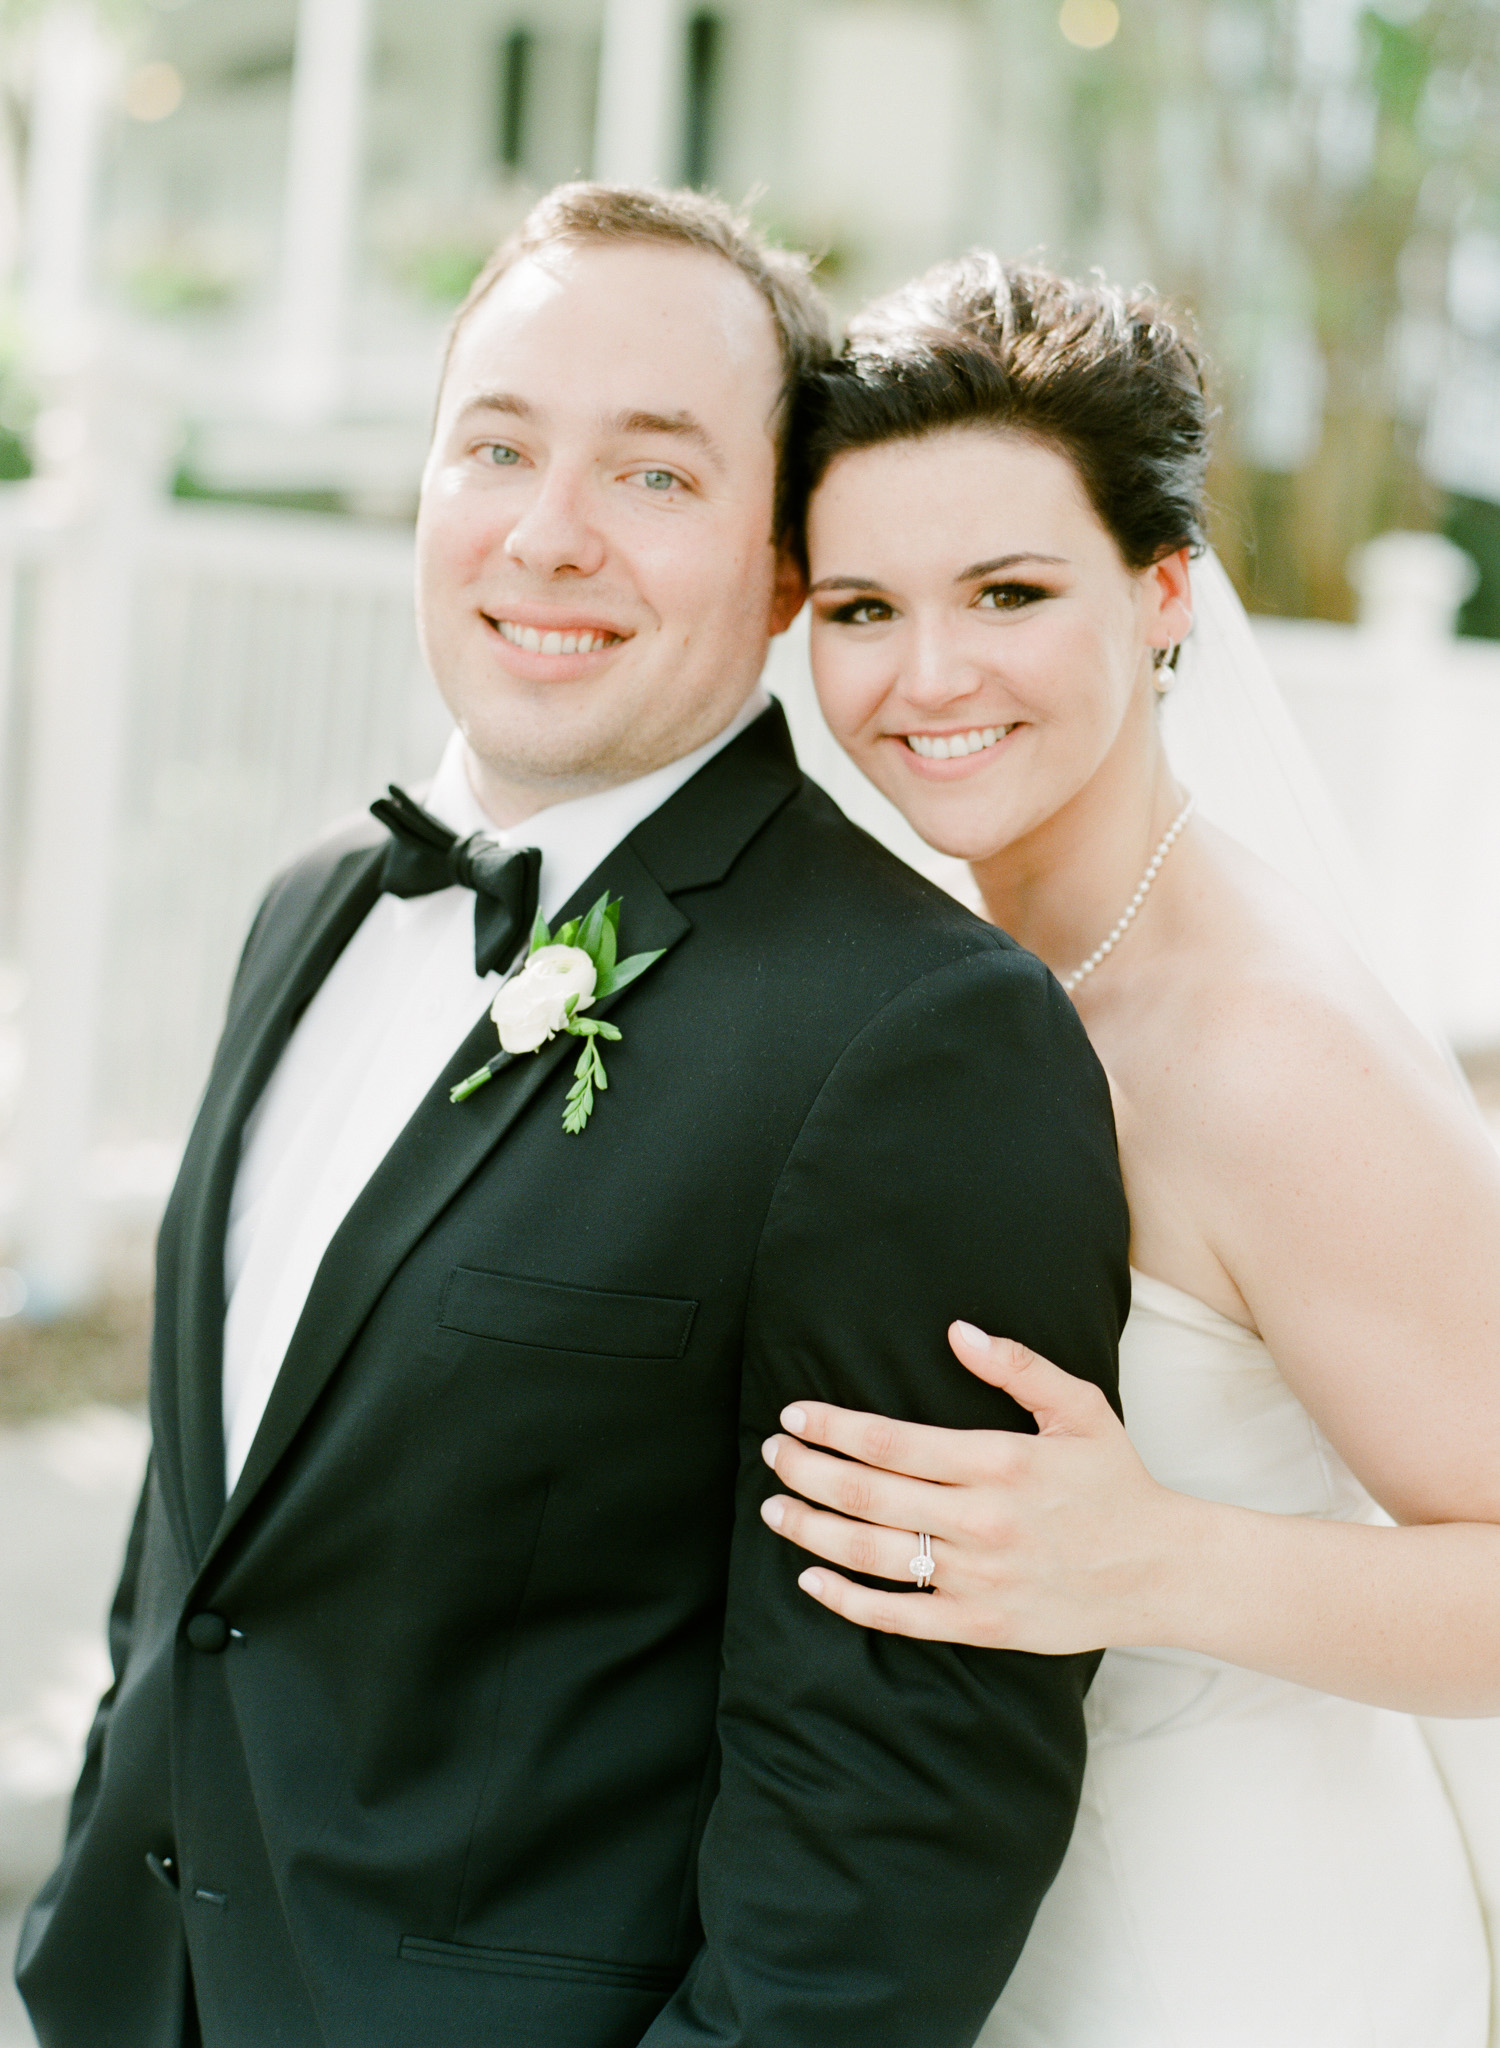 julie & adam - You all have done it again!! What an honor it was to have you all there and capture our special day!! Thank you so much for everything!! All of the pictures are stunning!!! Thank you so so much!!! - I am in awe!!!